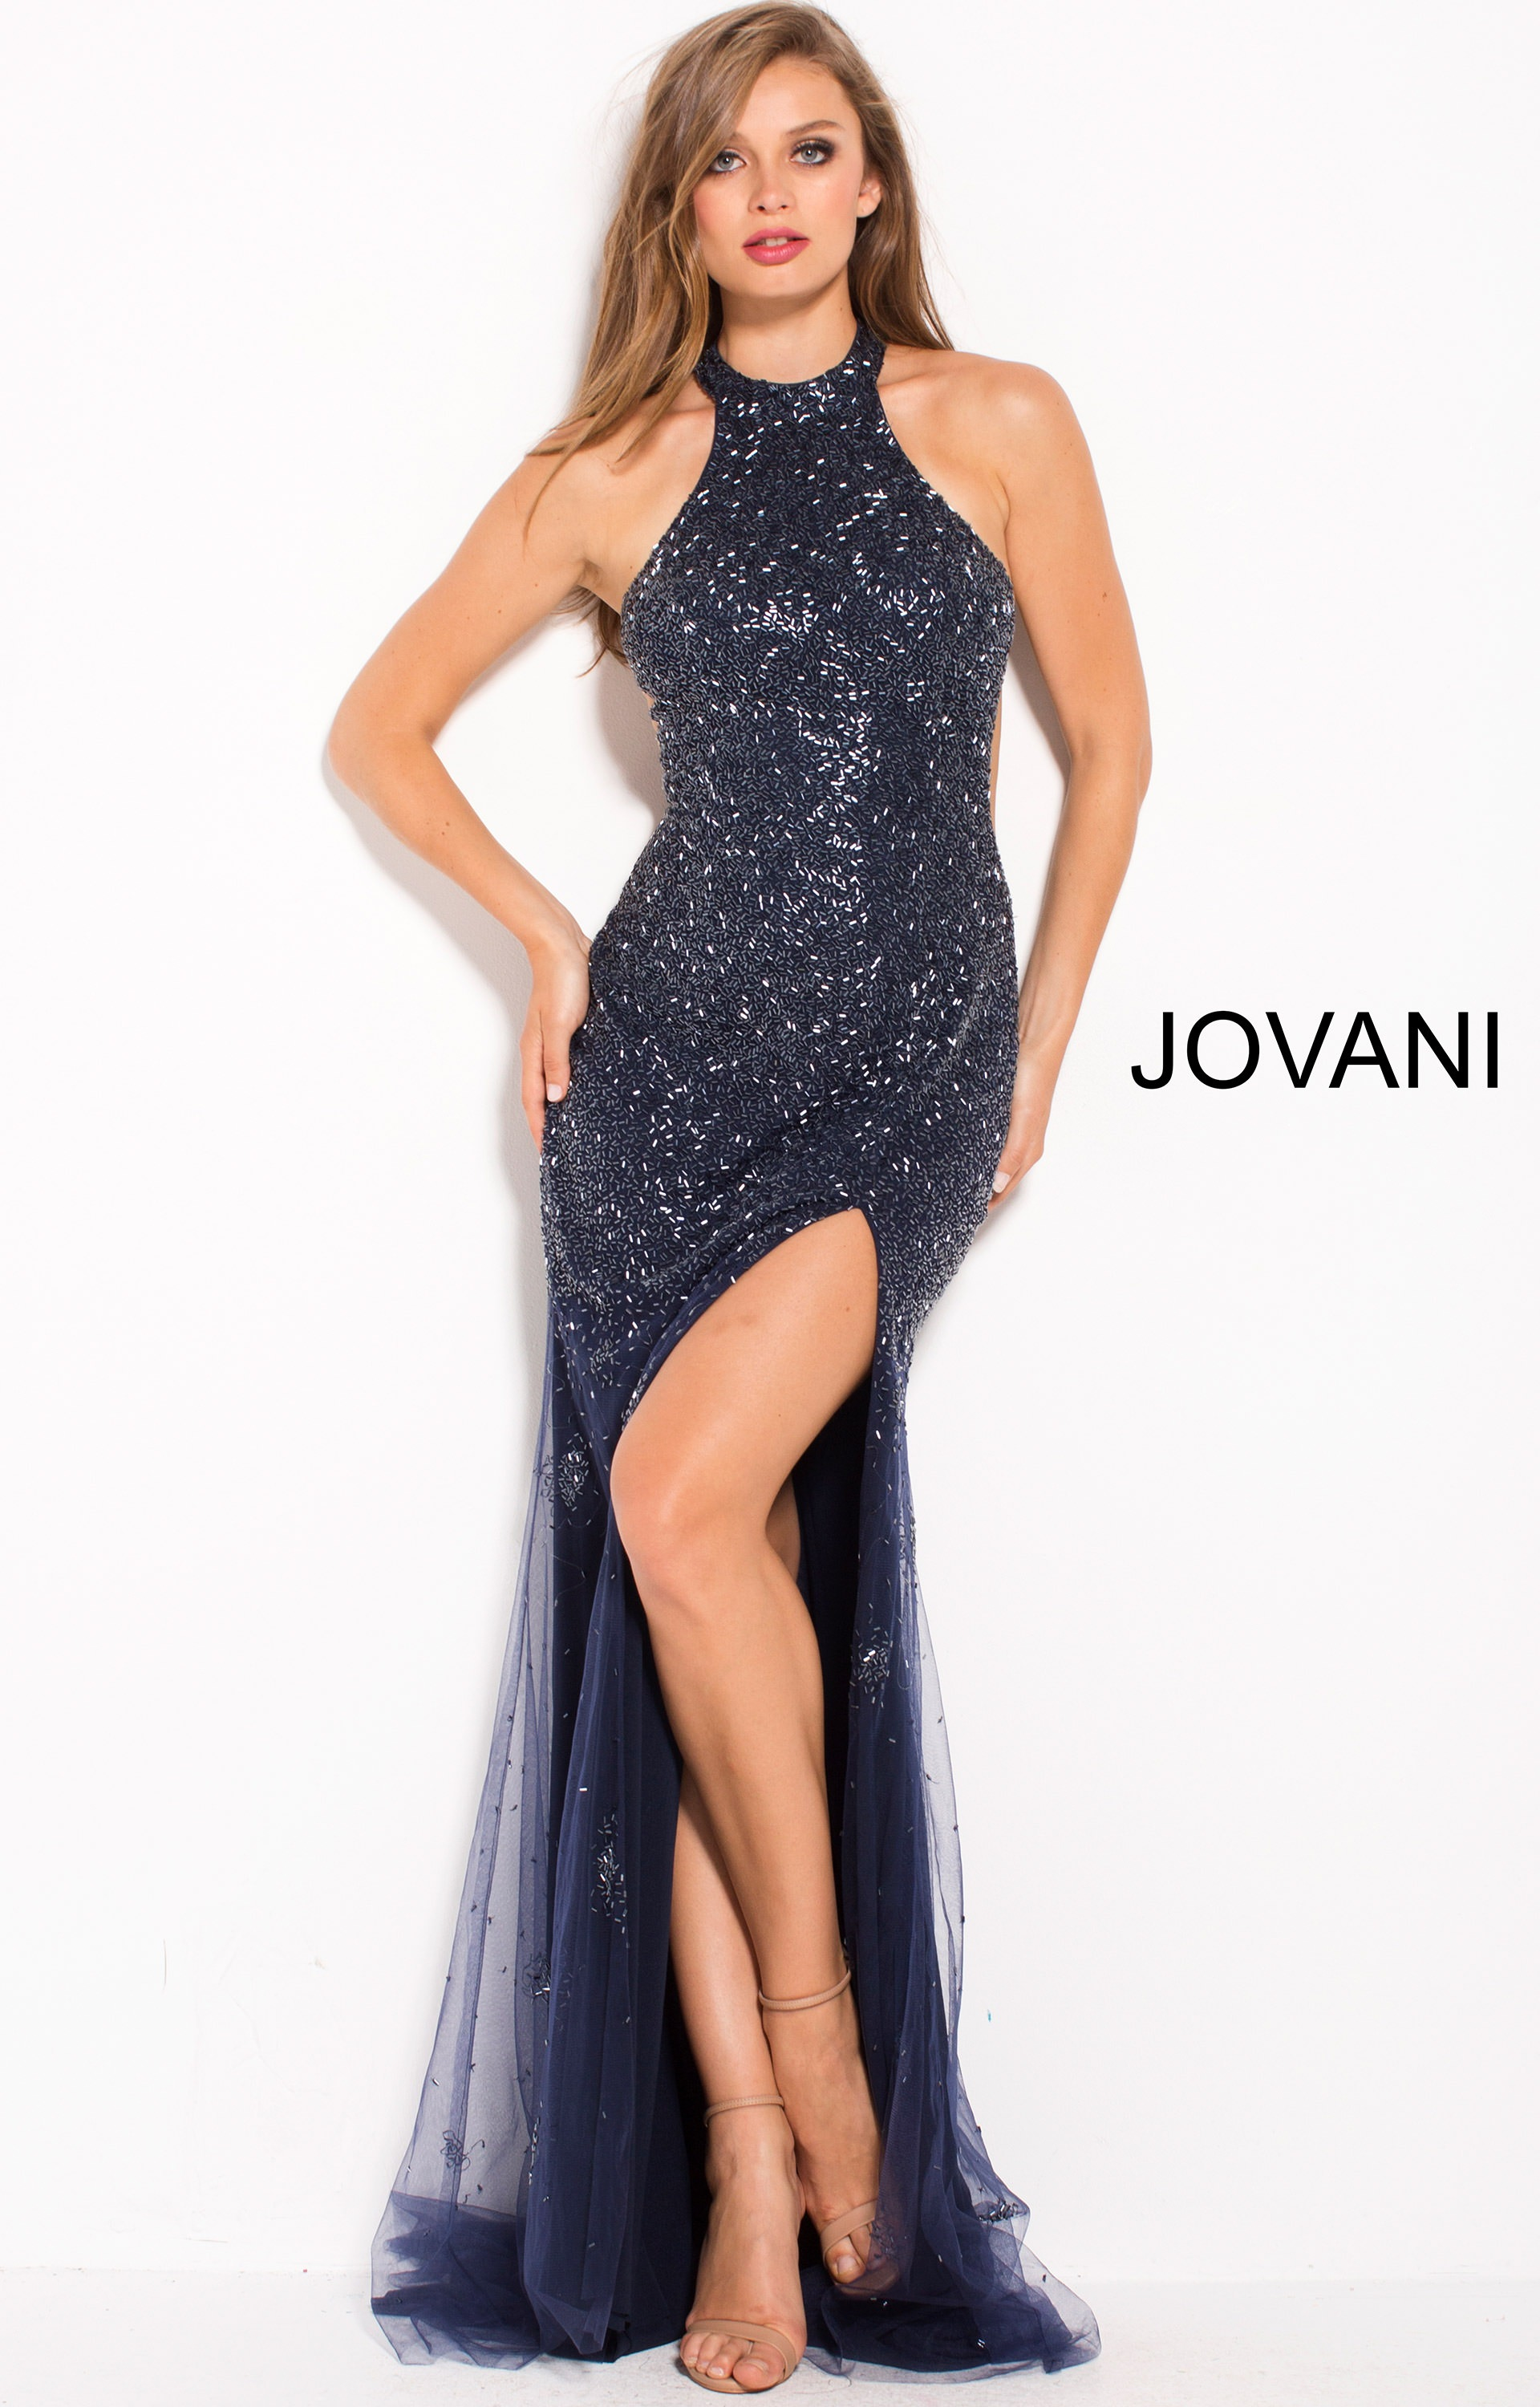 071feadf6bd Jovani 59819 - Fitted High Neck Fully Embellished Dress Prom Dress